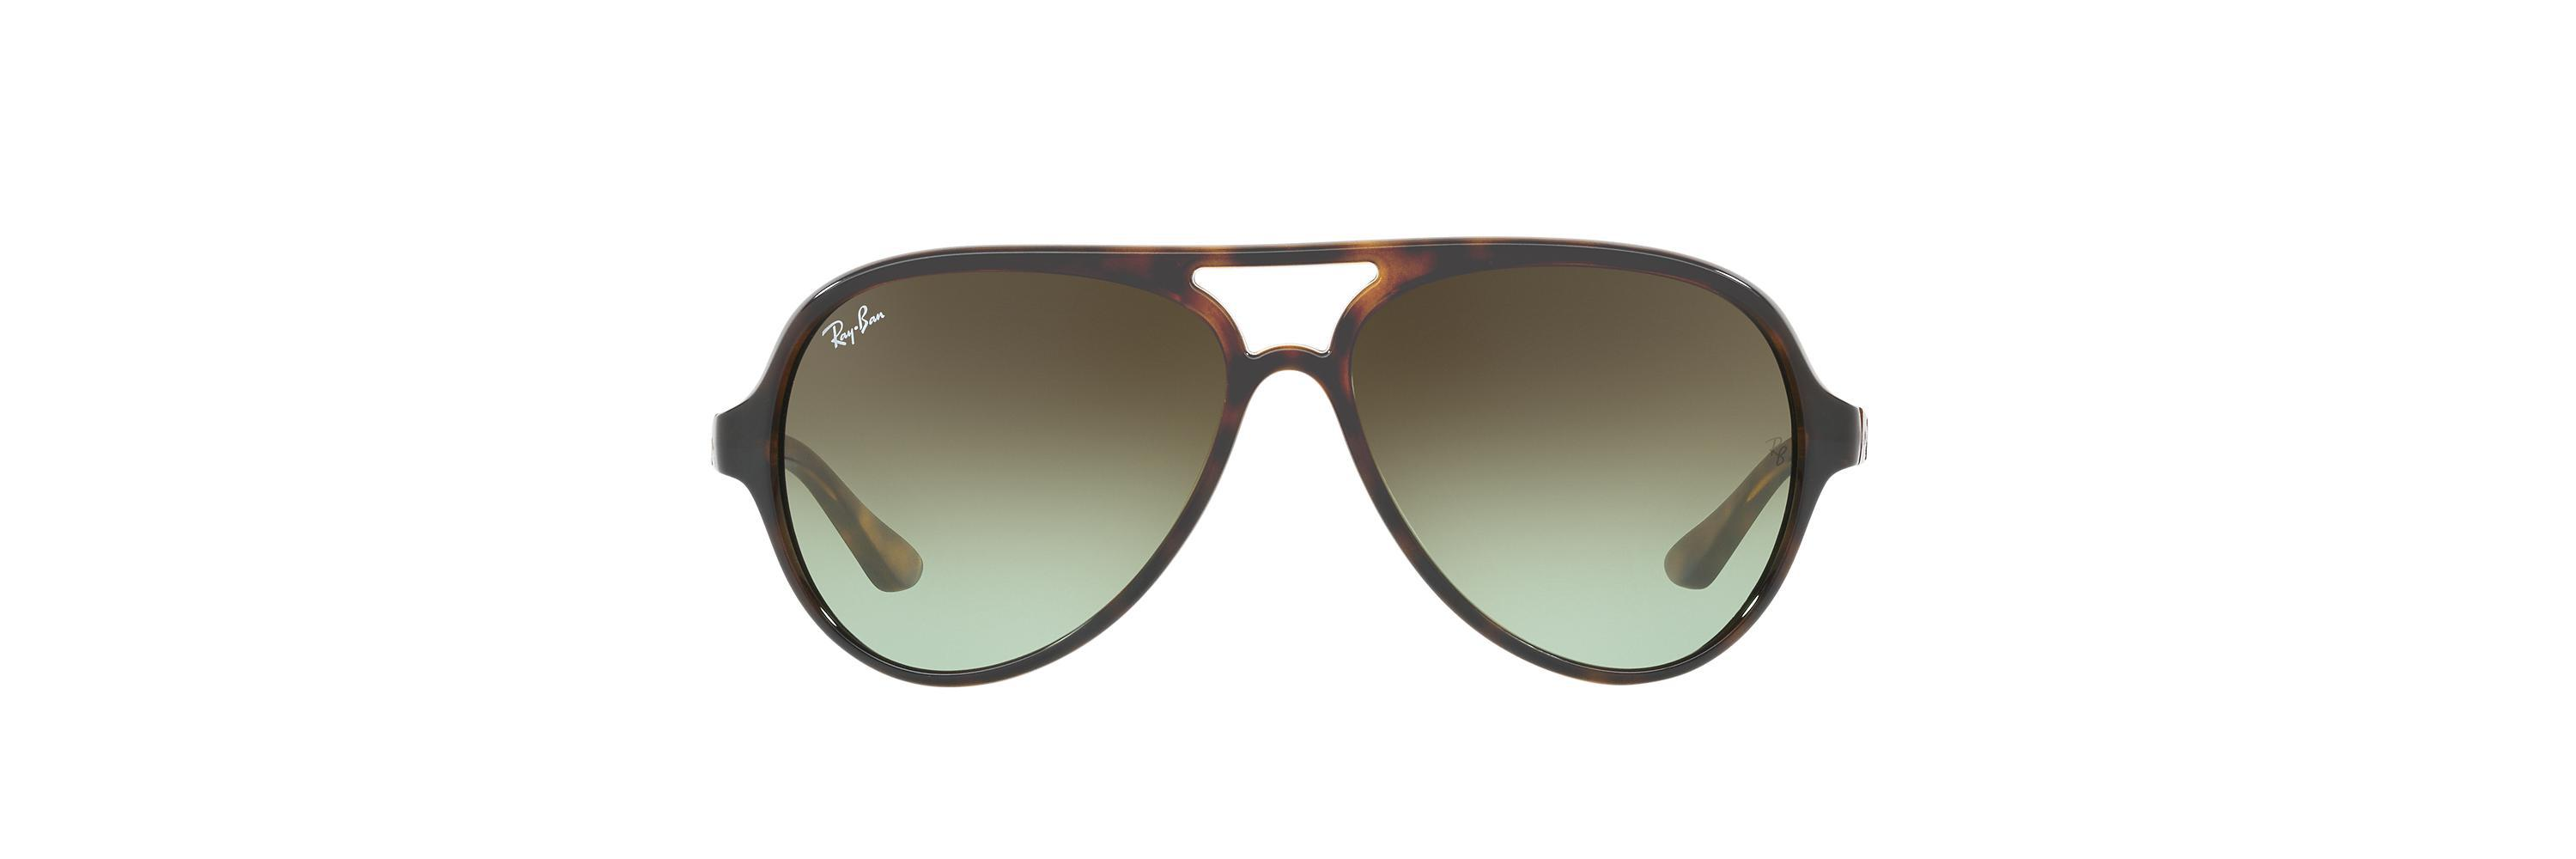 Lyst - Ray-Ban Rb4125 59 Cats 5000 in Brown